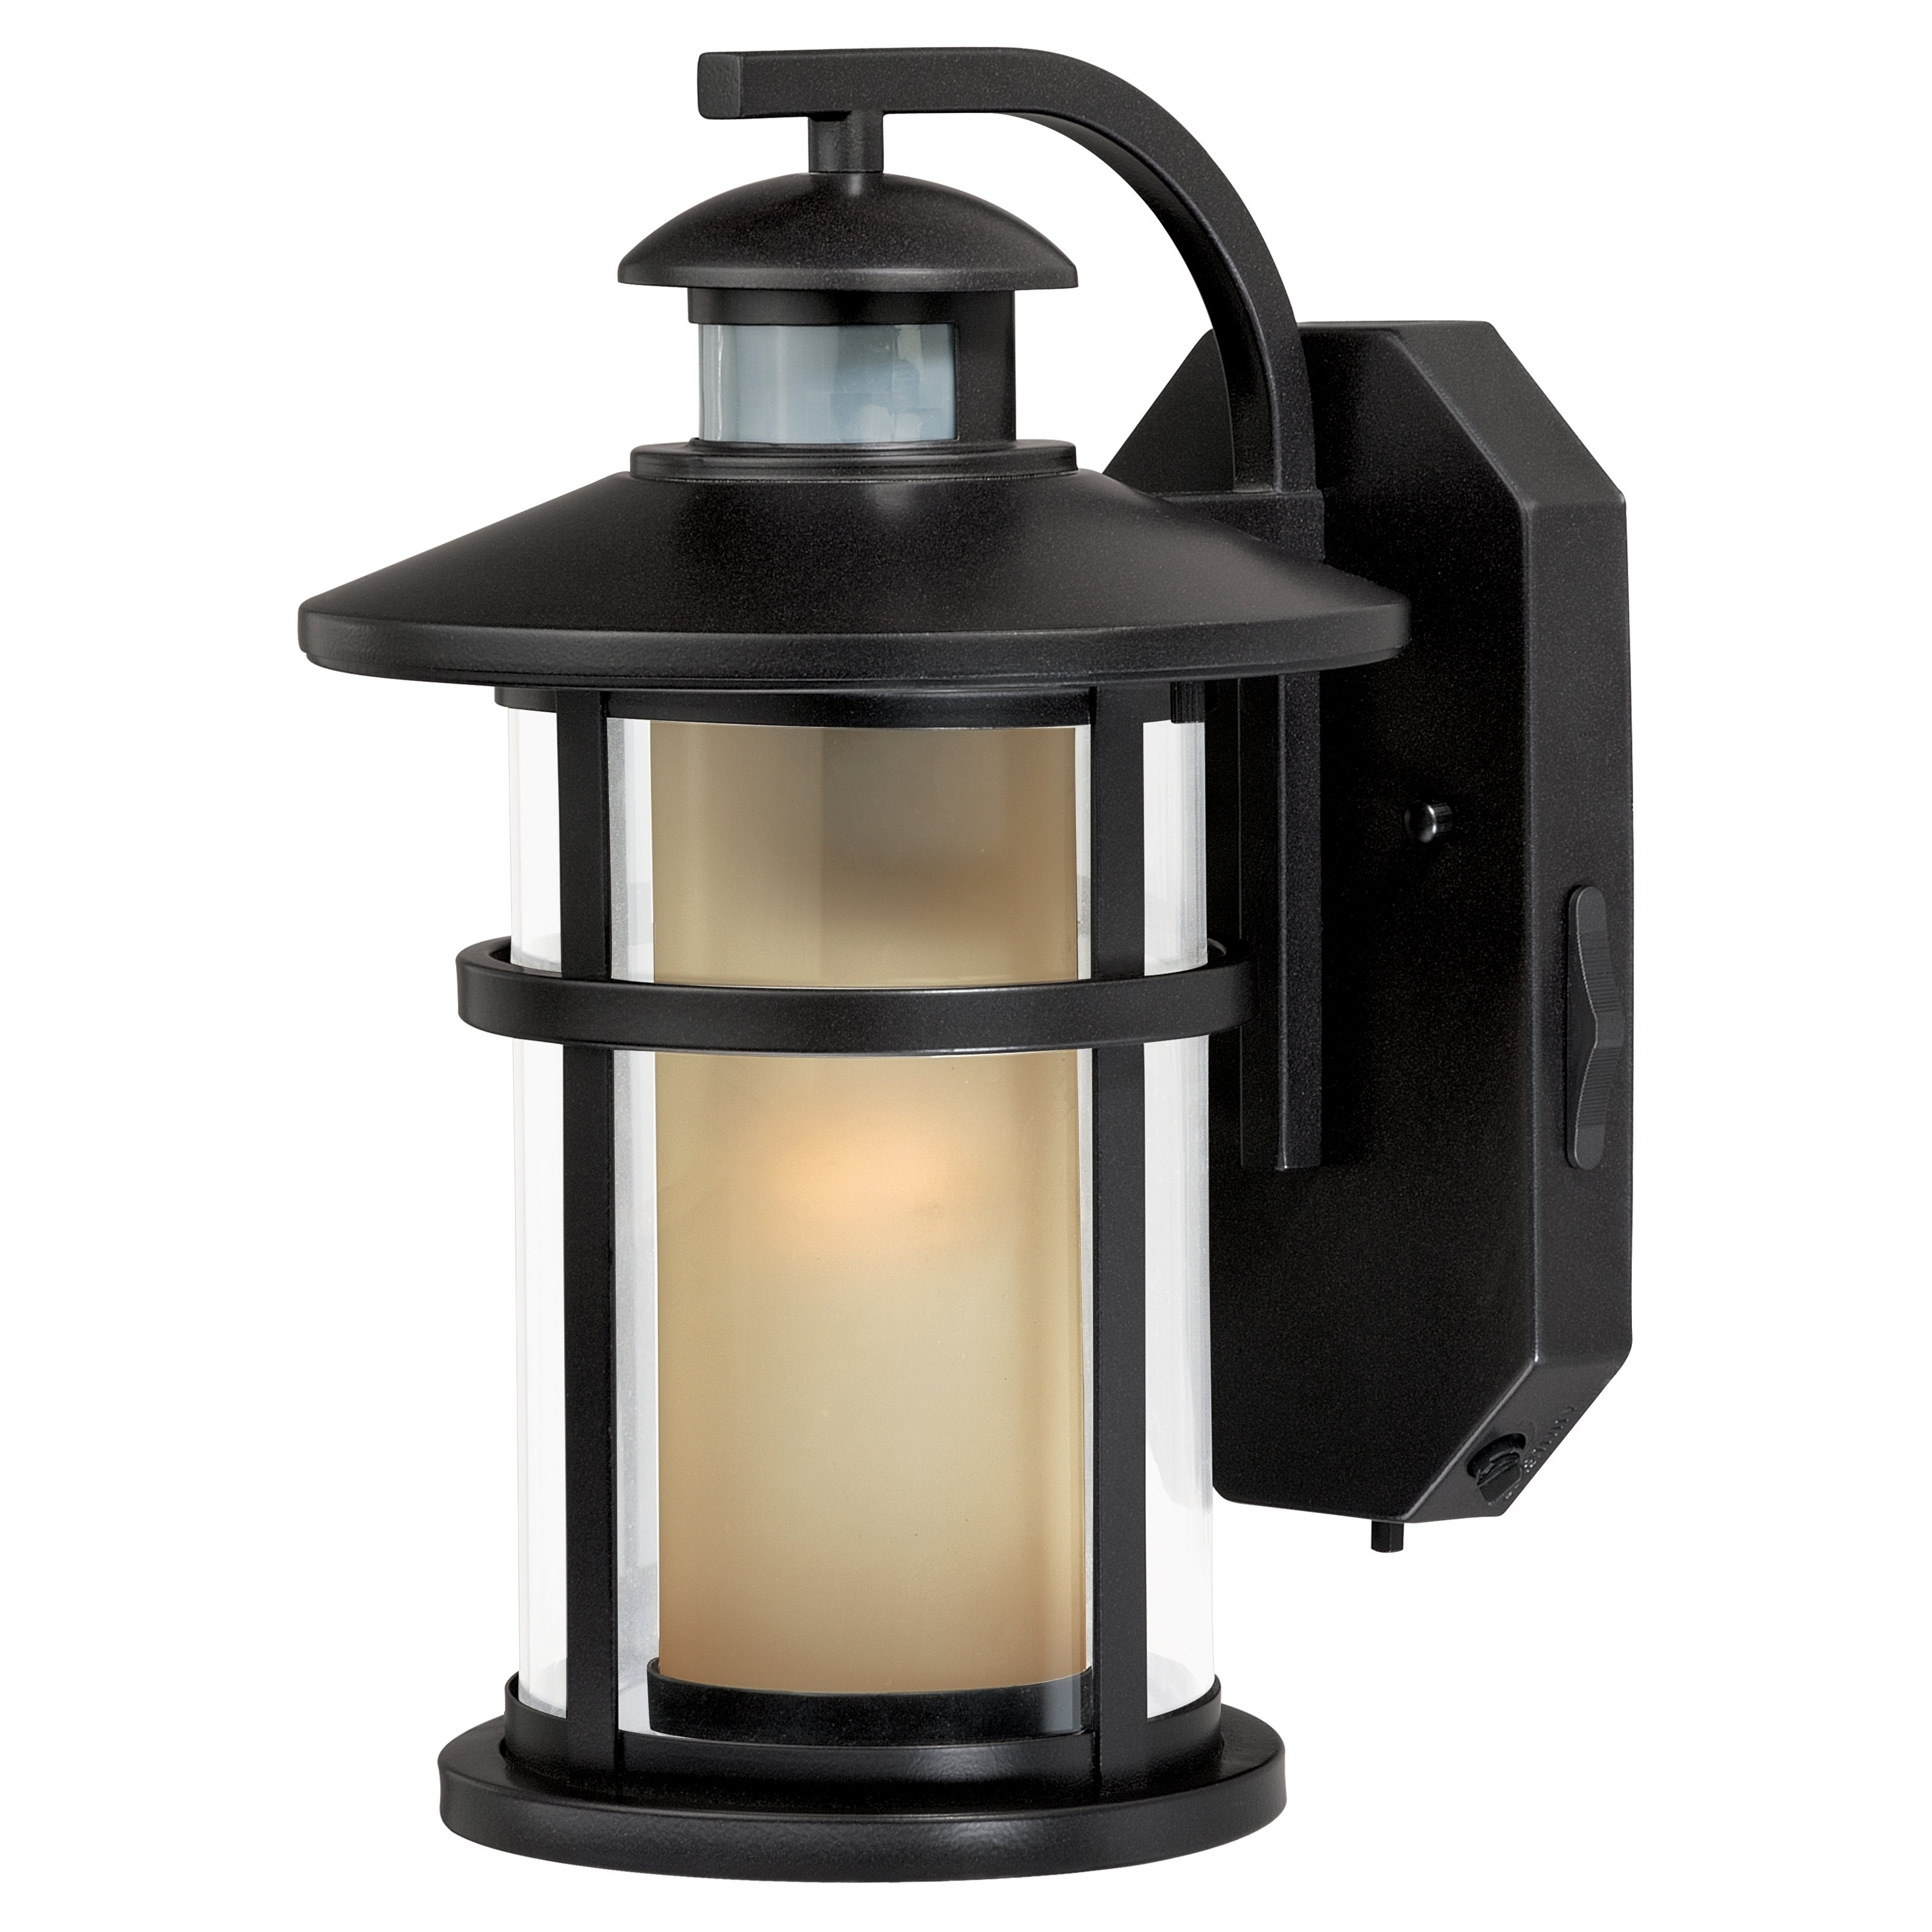 Famous Outdoor Motion Lanterns Intended For Vaxcel Cadiz T0128 Outdoor Motion Sensor Light (View 3 of 20)